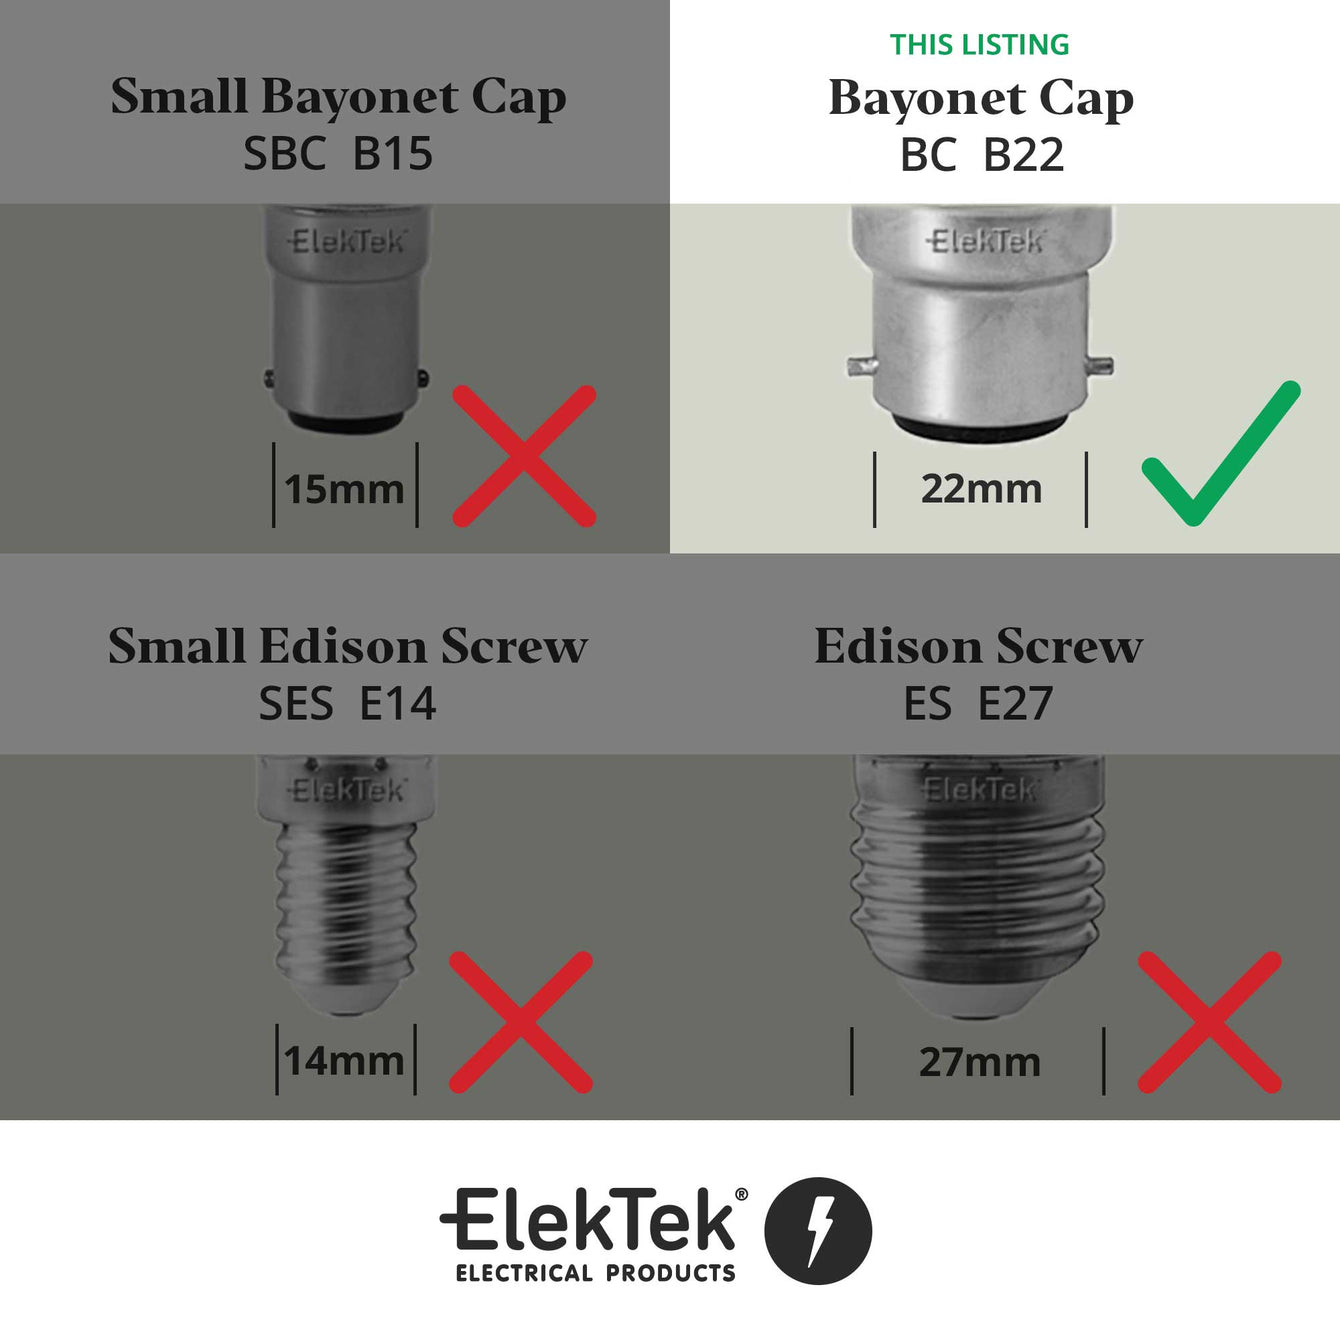 ElekTek Safety Switch Lamp Holder Half Inch Bayonet Cap B22 With Matching Cable Cord Grip Brass - Buy It Better Chrome